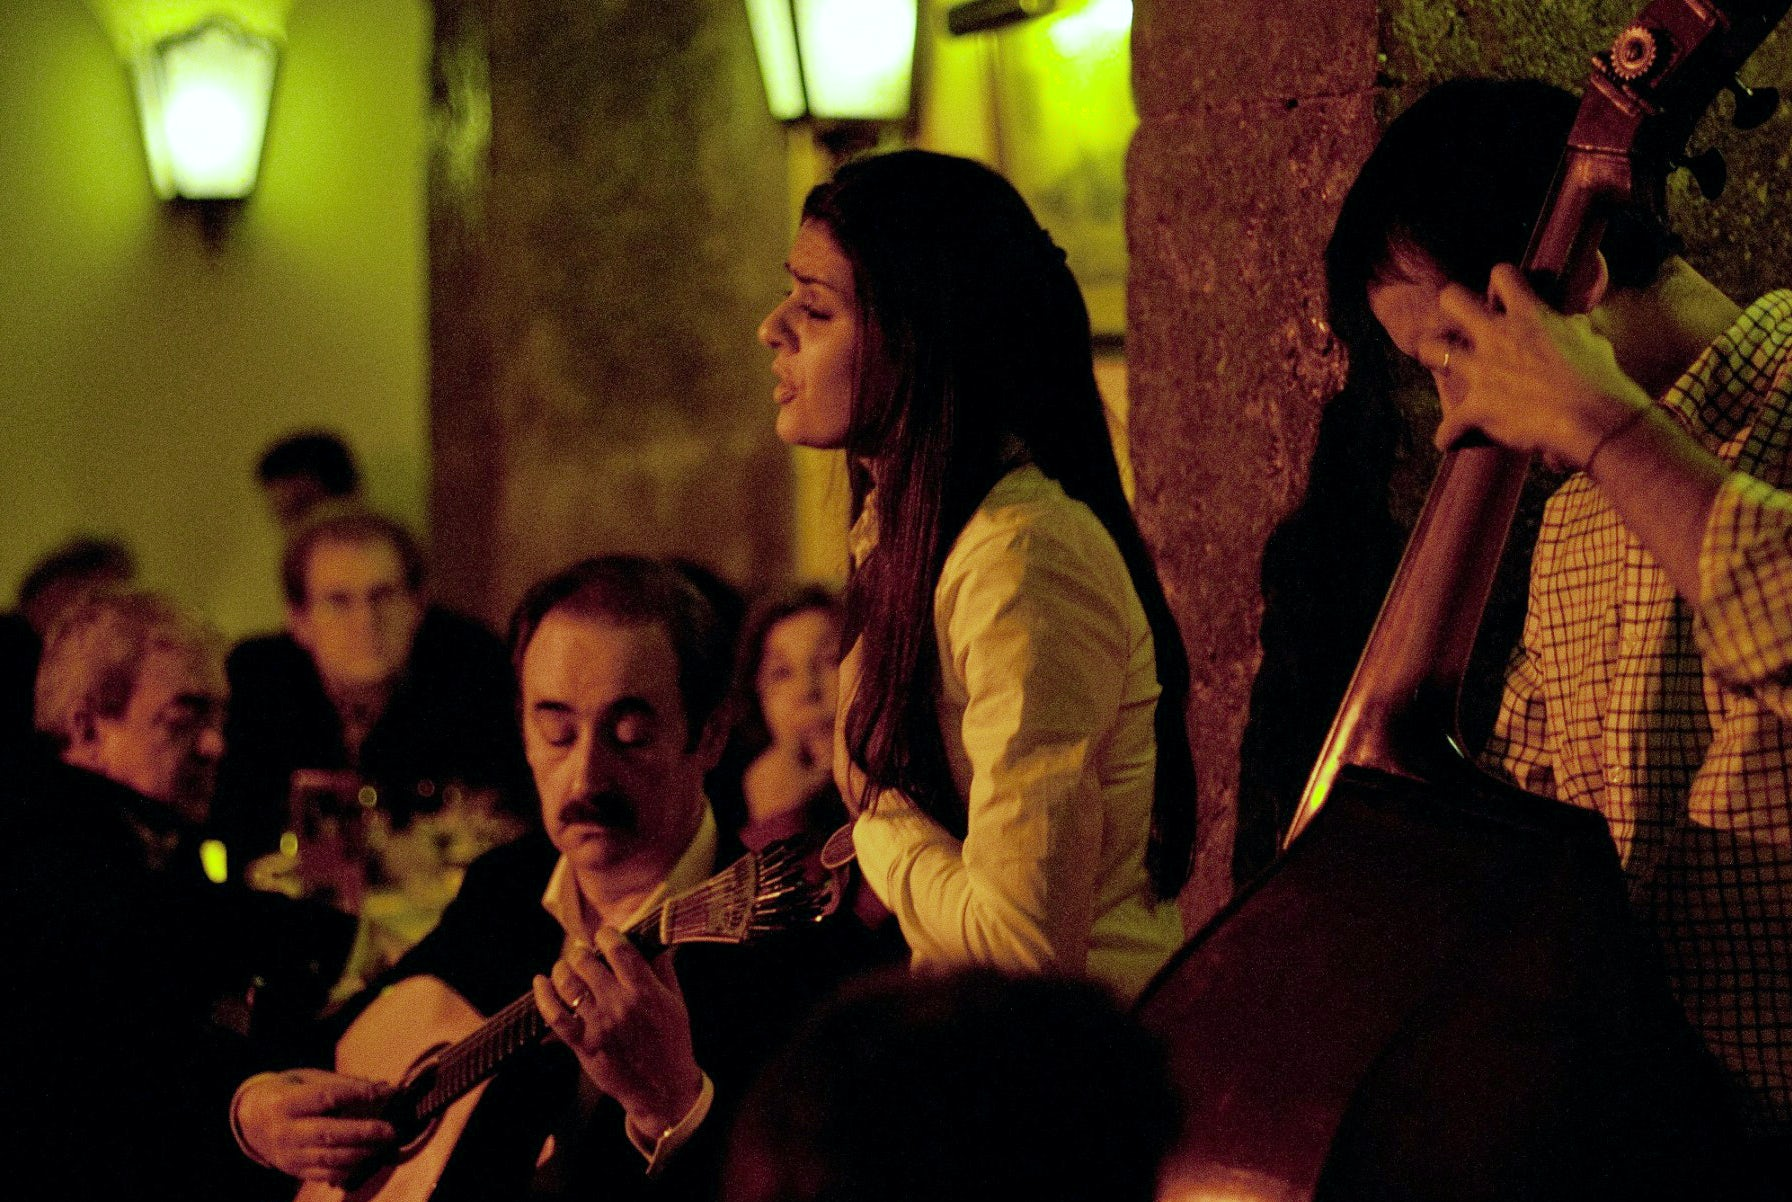 A tour around the Fado houses of Lisboa